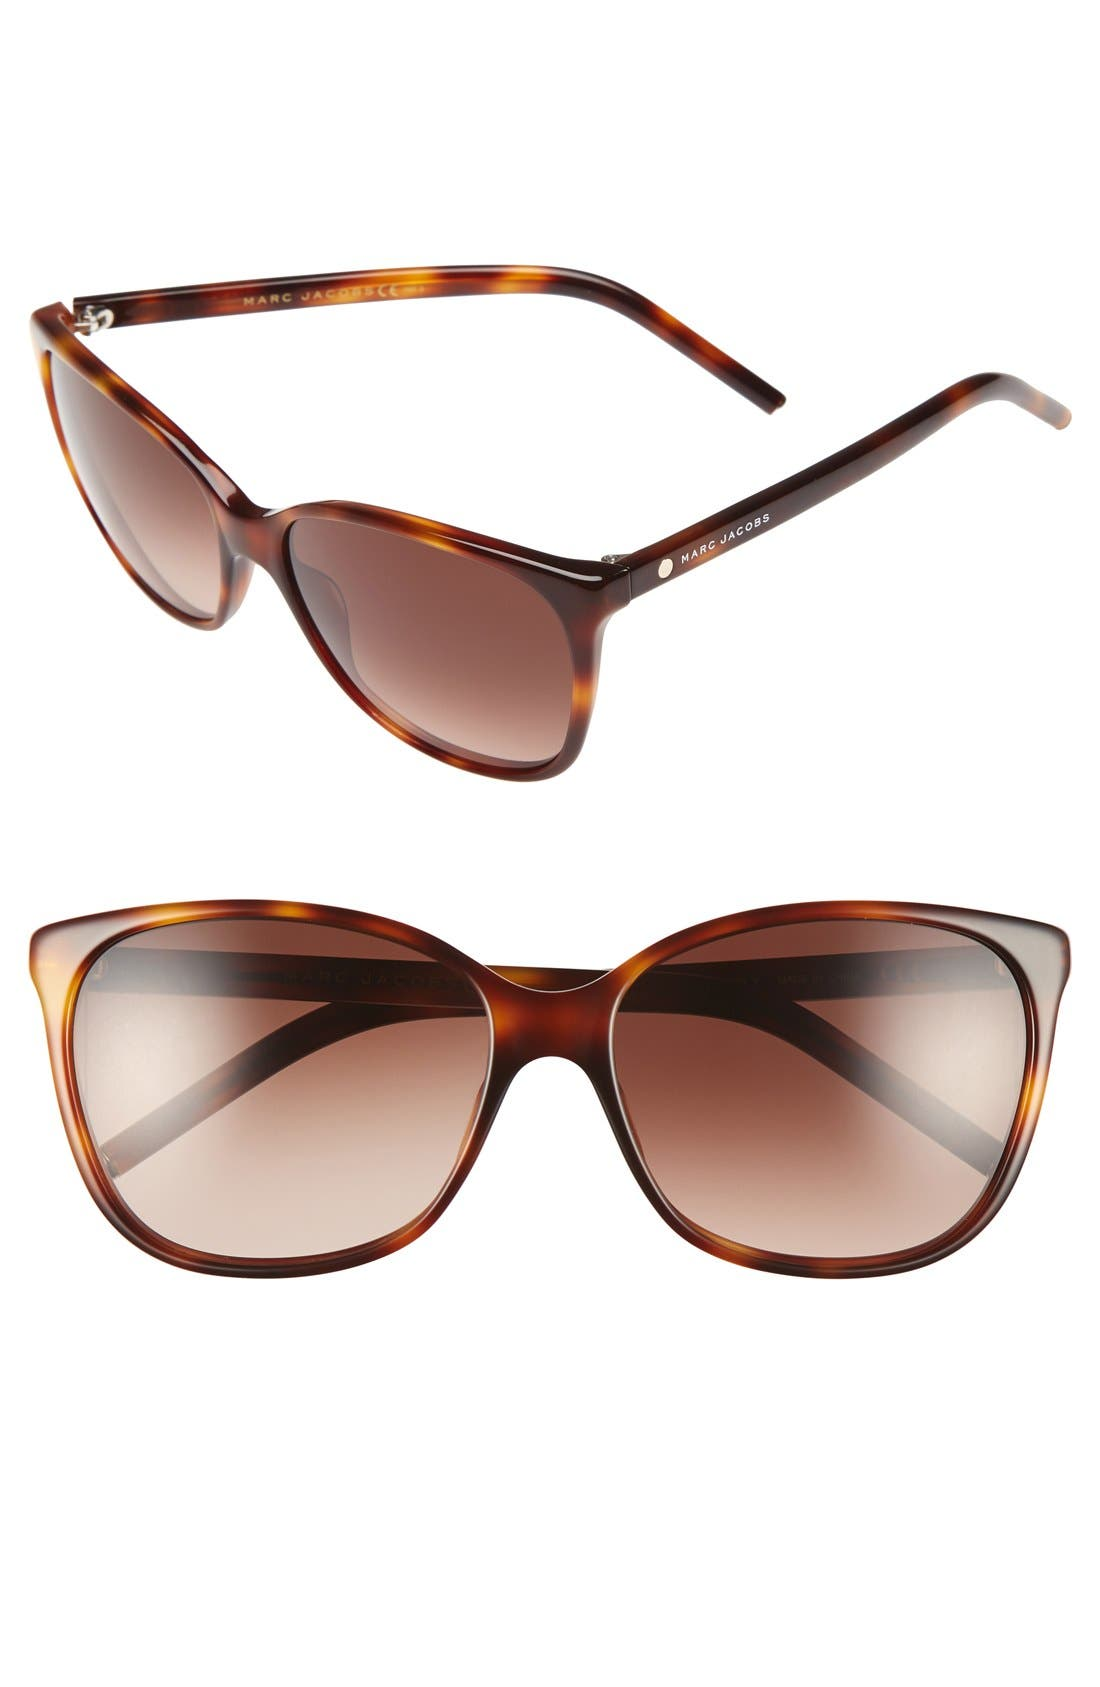 57mm Oversized Sunglasses,                         Main,                         color, Havana